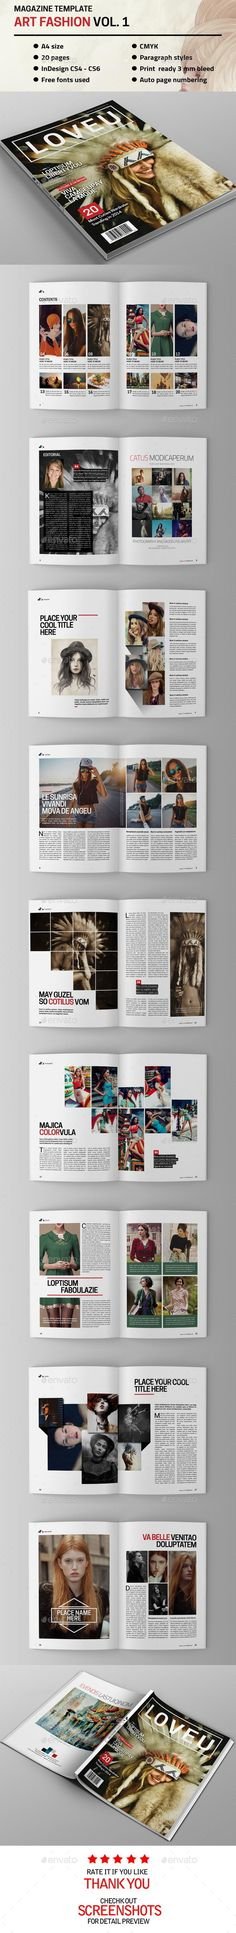 Art Fahion Magazine Template | Download: http://graphicriver.net/item/art-fahion-magazine-vol-1/9822137?ref=ksioks